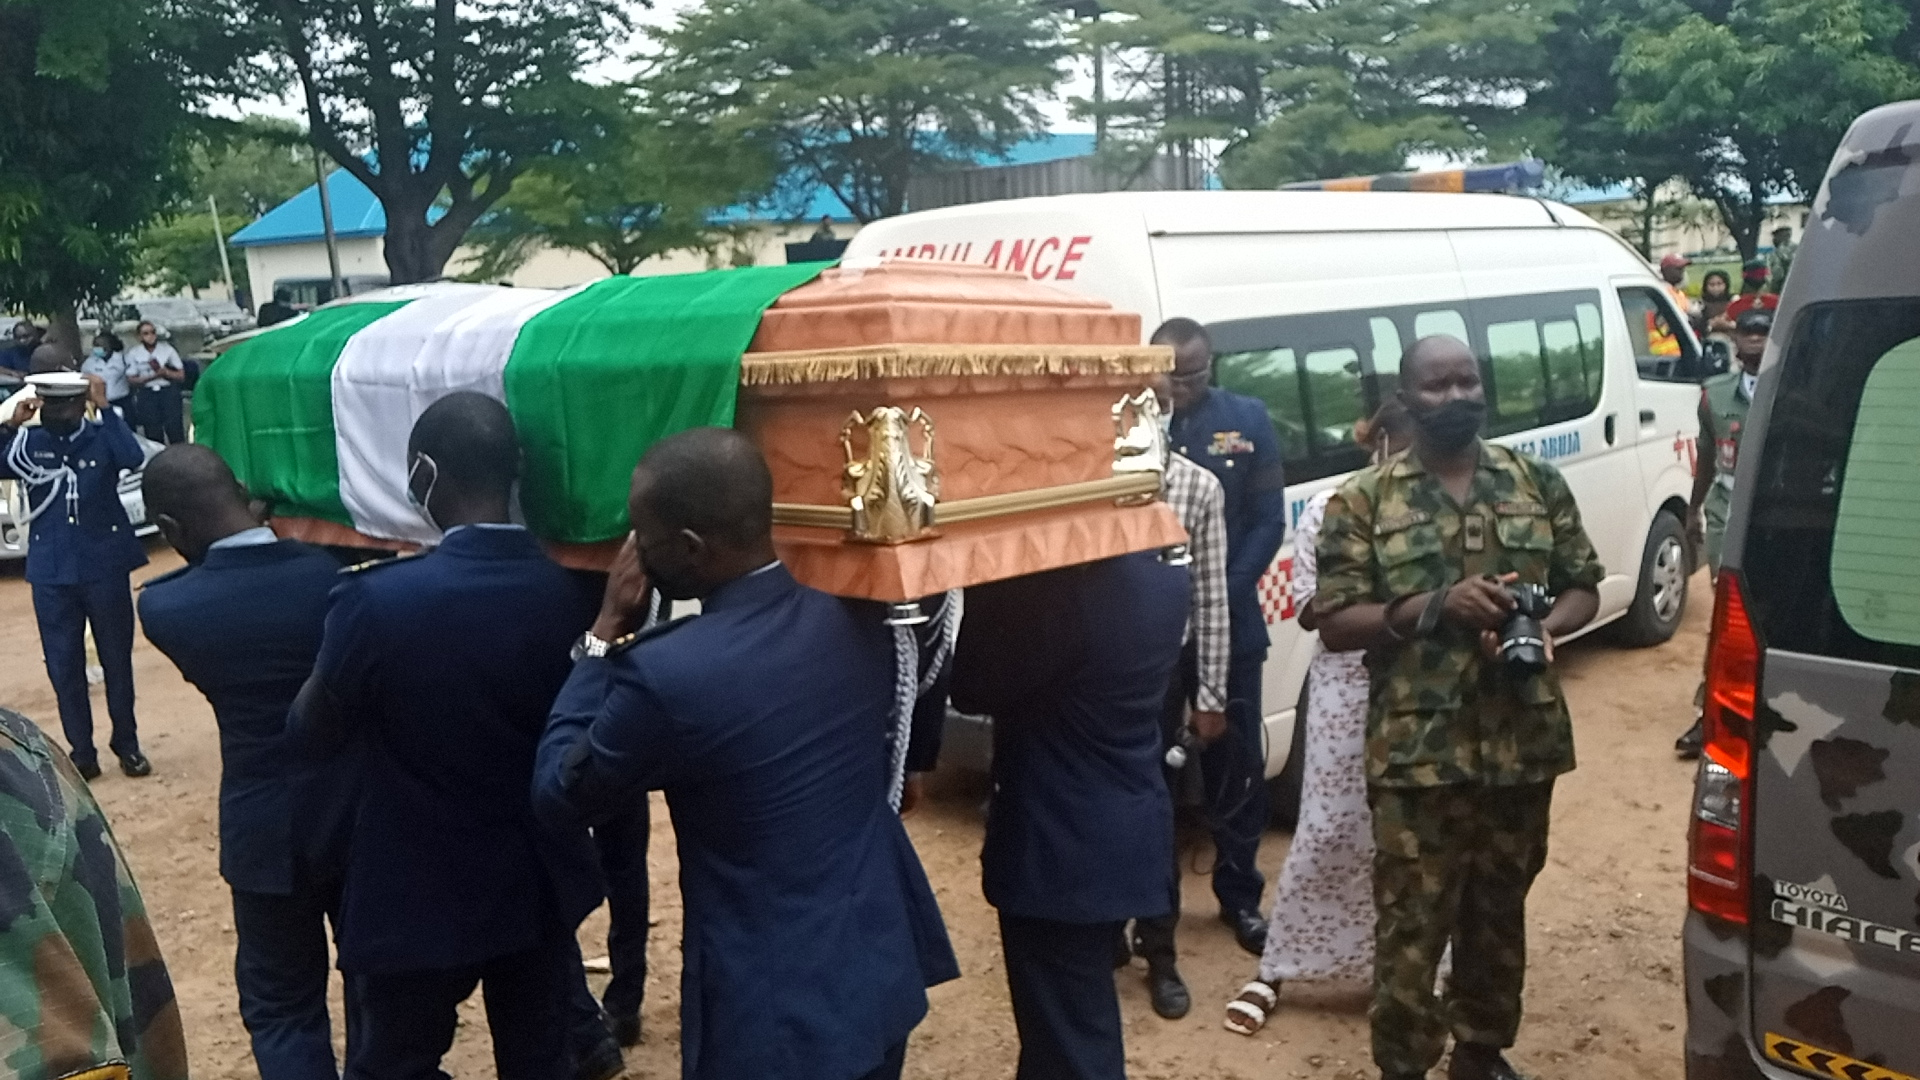 The Caskets of each Officer is being carried to their respective ambulances